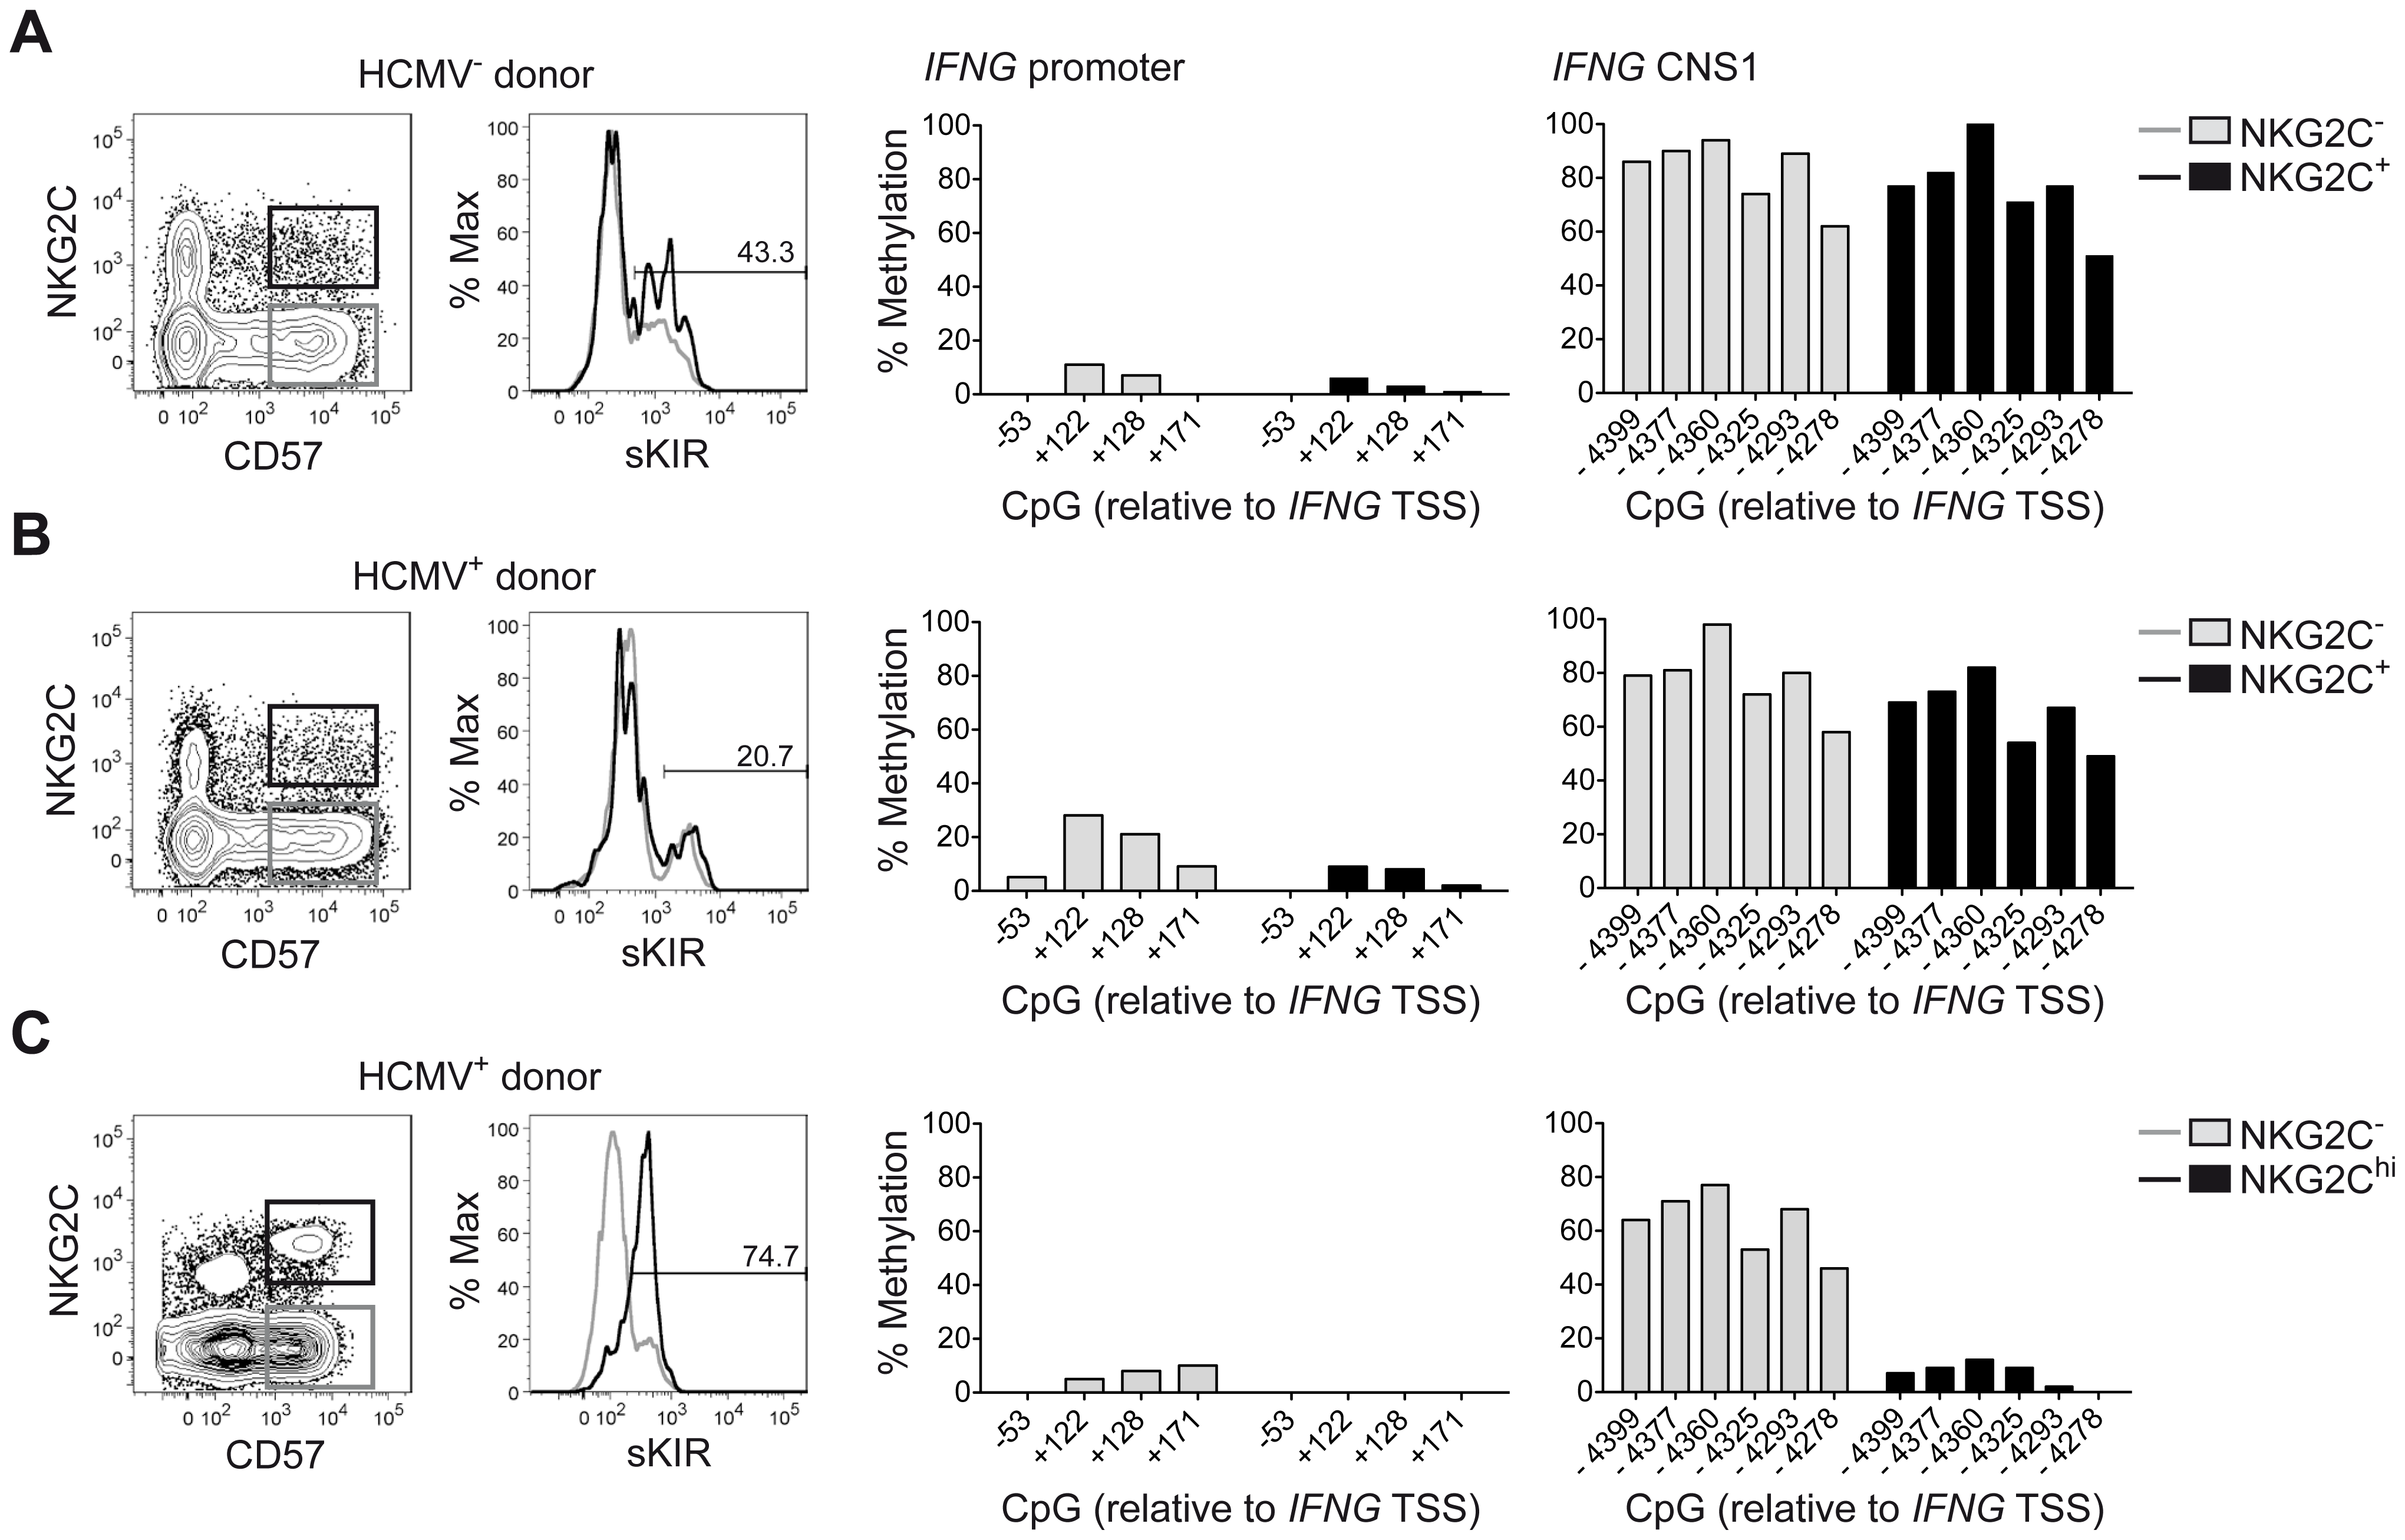 Expanded NKG2C<sup>hi</sup> NK cells display complete demethylation of the <i>IFNG</i> CNS1.